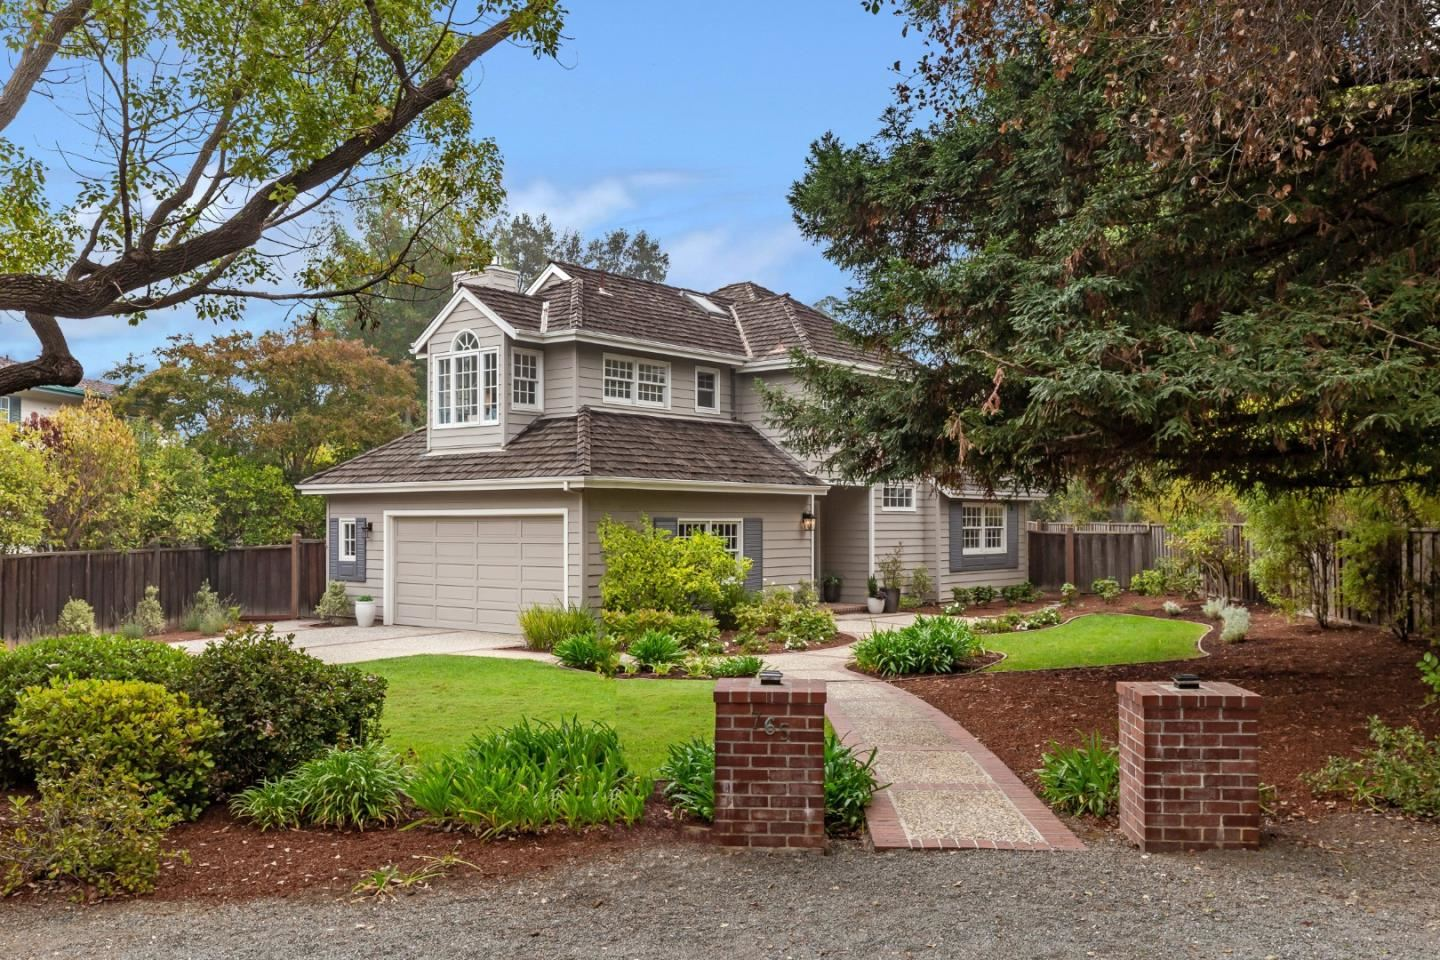 Photo for 765 Linden AVE, LOS ALTOS, CA 94022 (MLS # ML81810420)